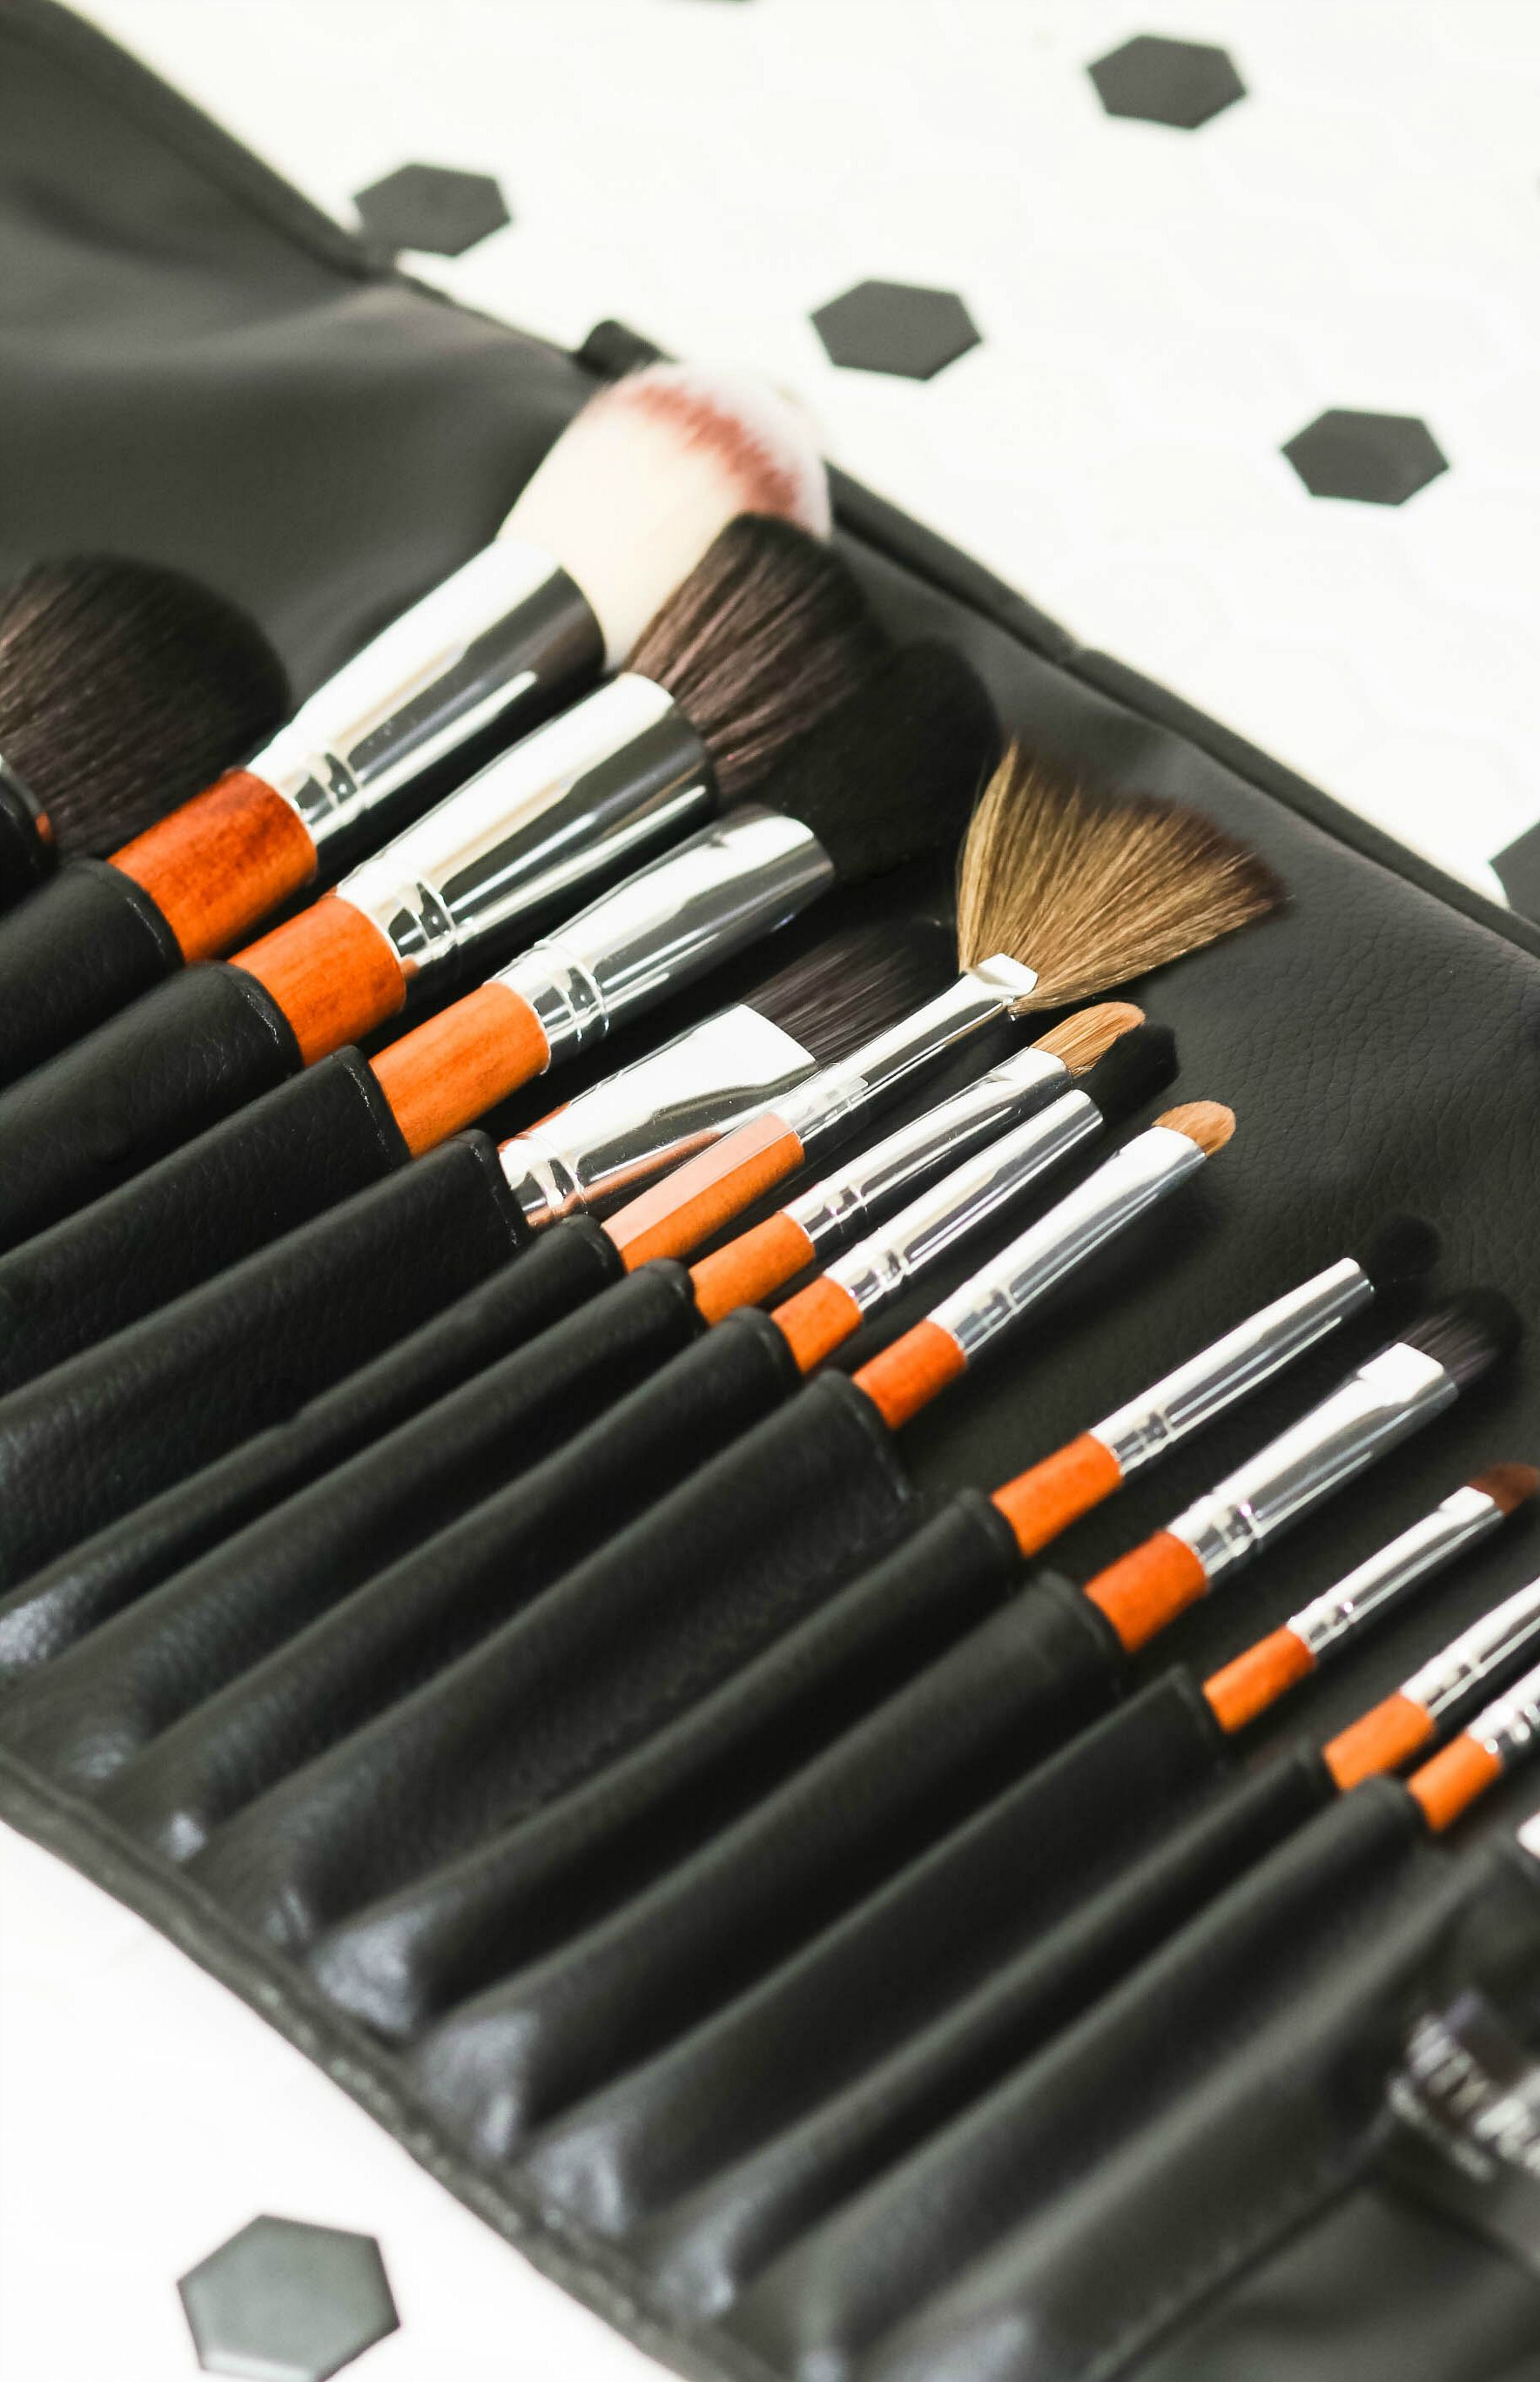 15 Vanity Makeup Brushes (And How to Properly Use